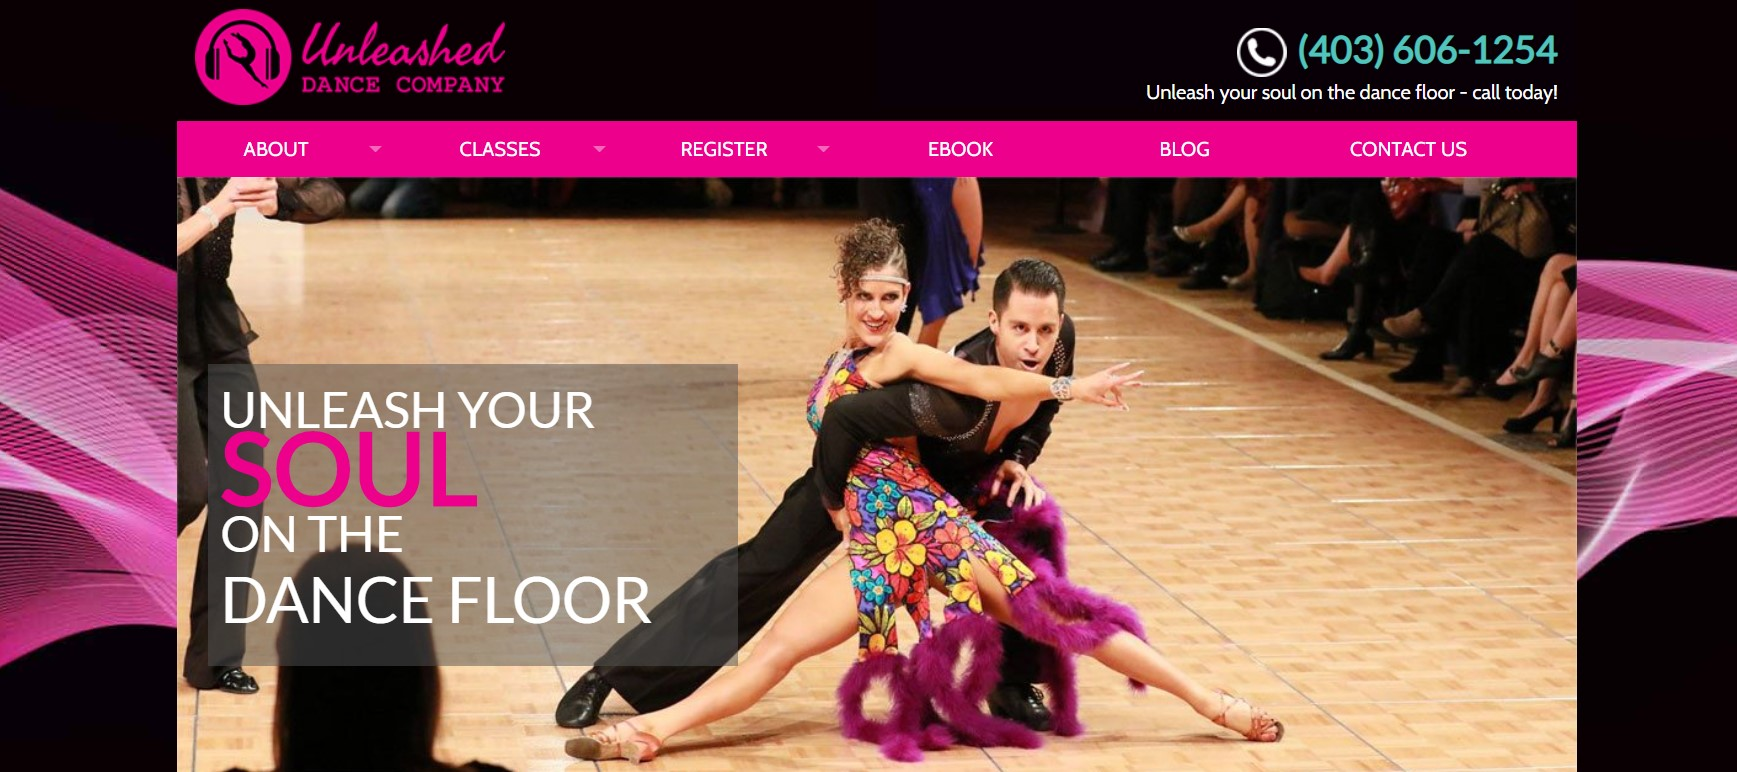 unleashed dance company dance instructor in calgary